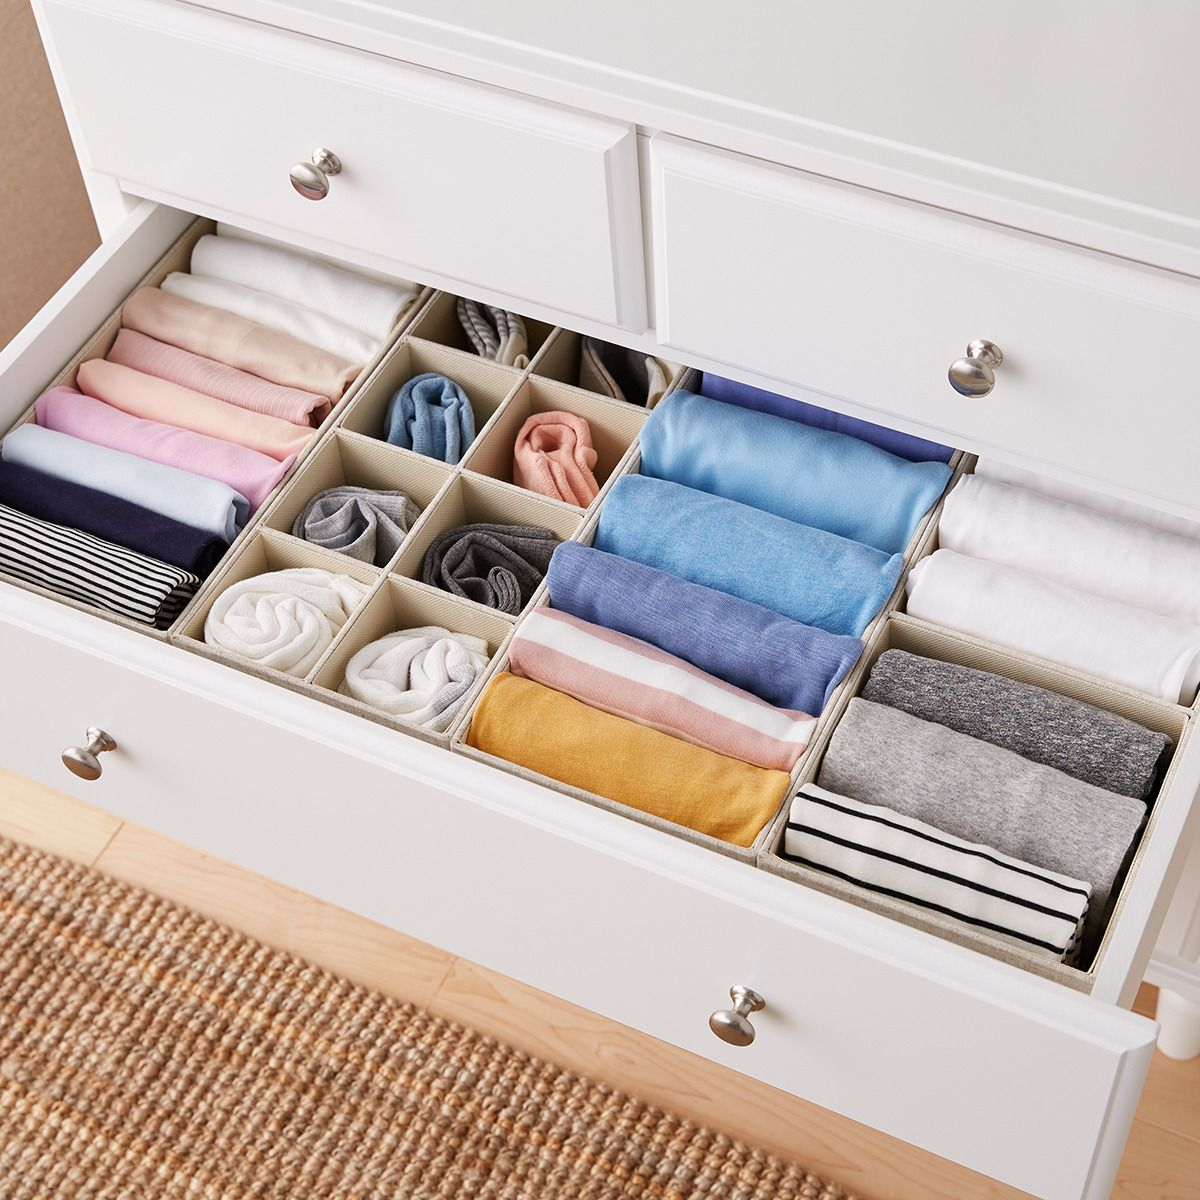 The Best Drawer Organizers According To Professional Declutterers In 2020 Dresser Drawer Organization Clothes Closet Organization Organization Bedroom